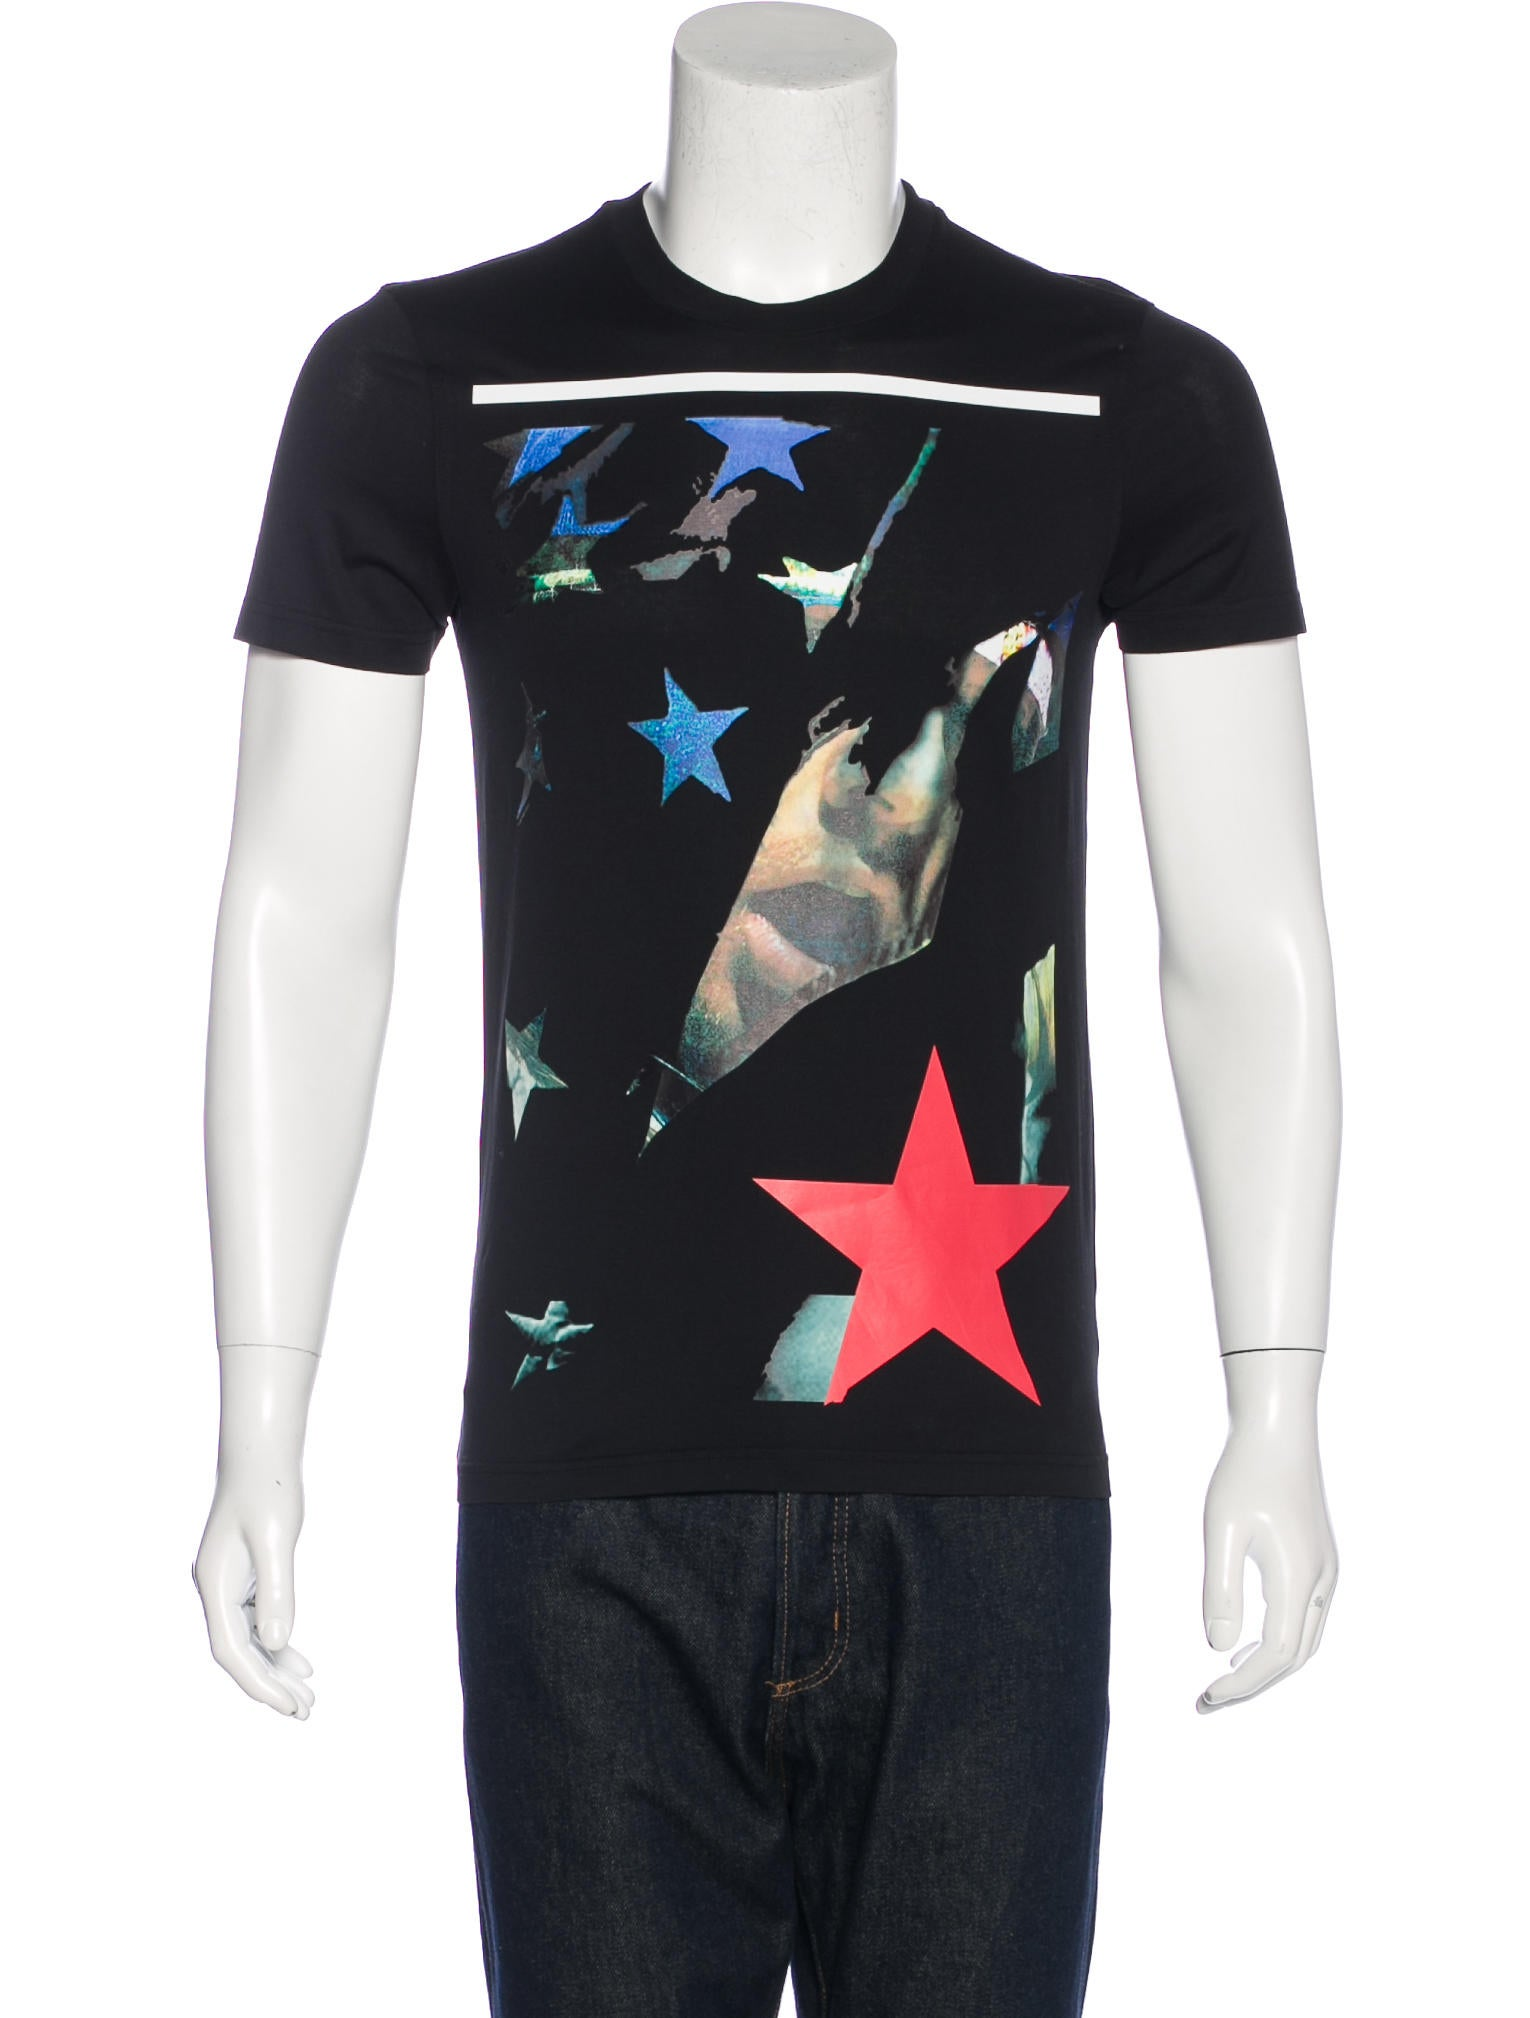 Givenchy graphic print t shirt clothing giv41645 the for T shirt graphic printing